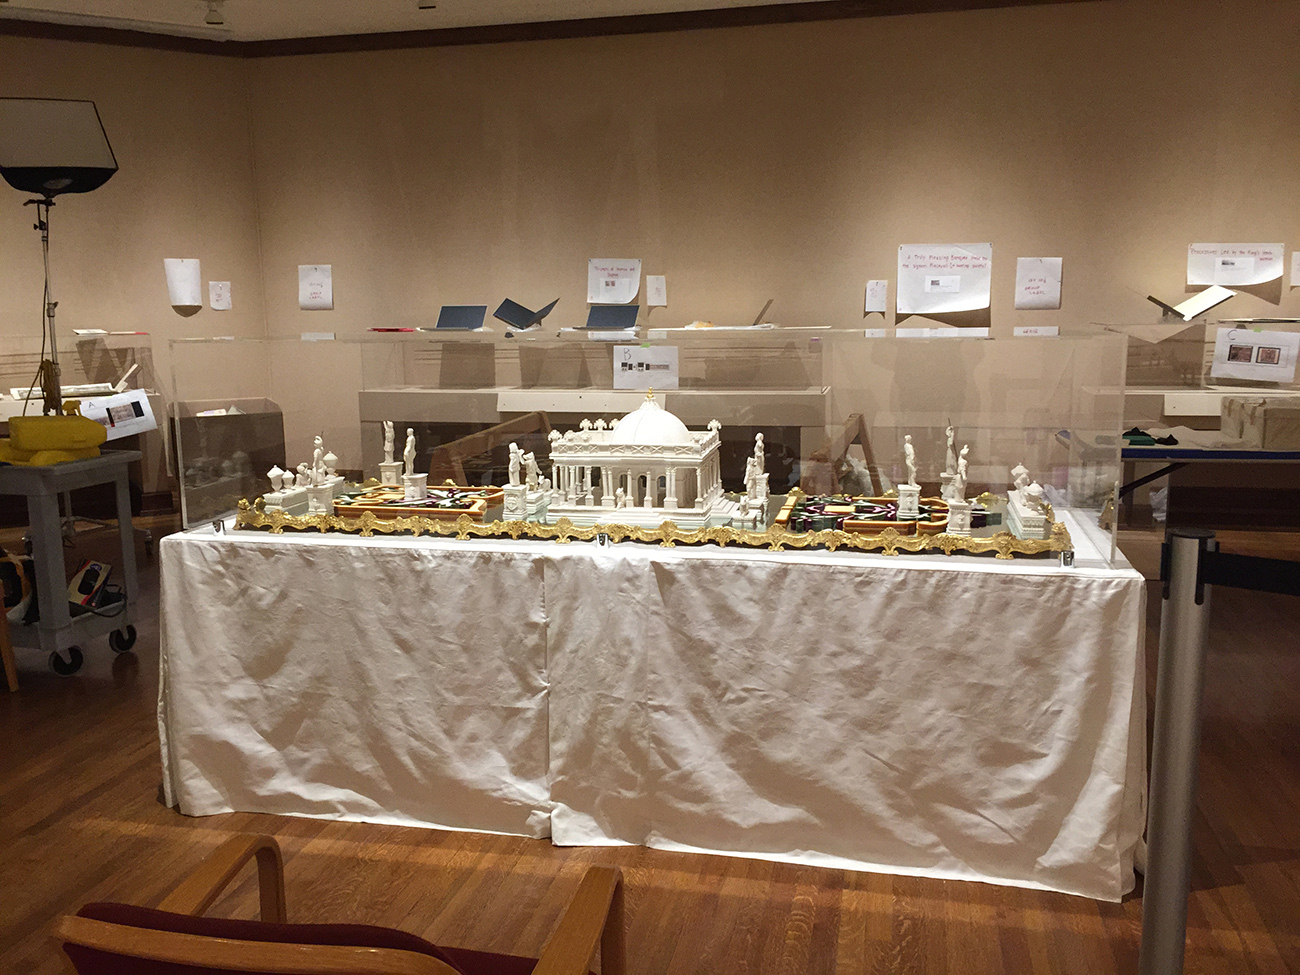 Installing a sugar sculpture as part of The Edible Monument at the Detroit Institute of Art.